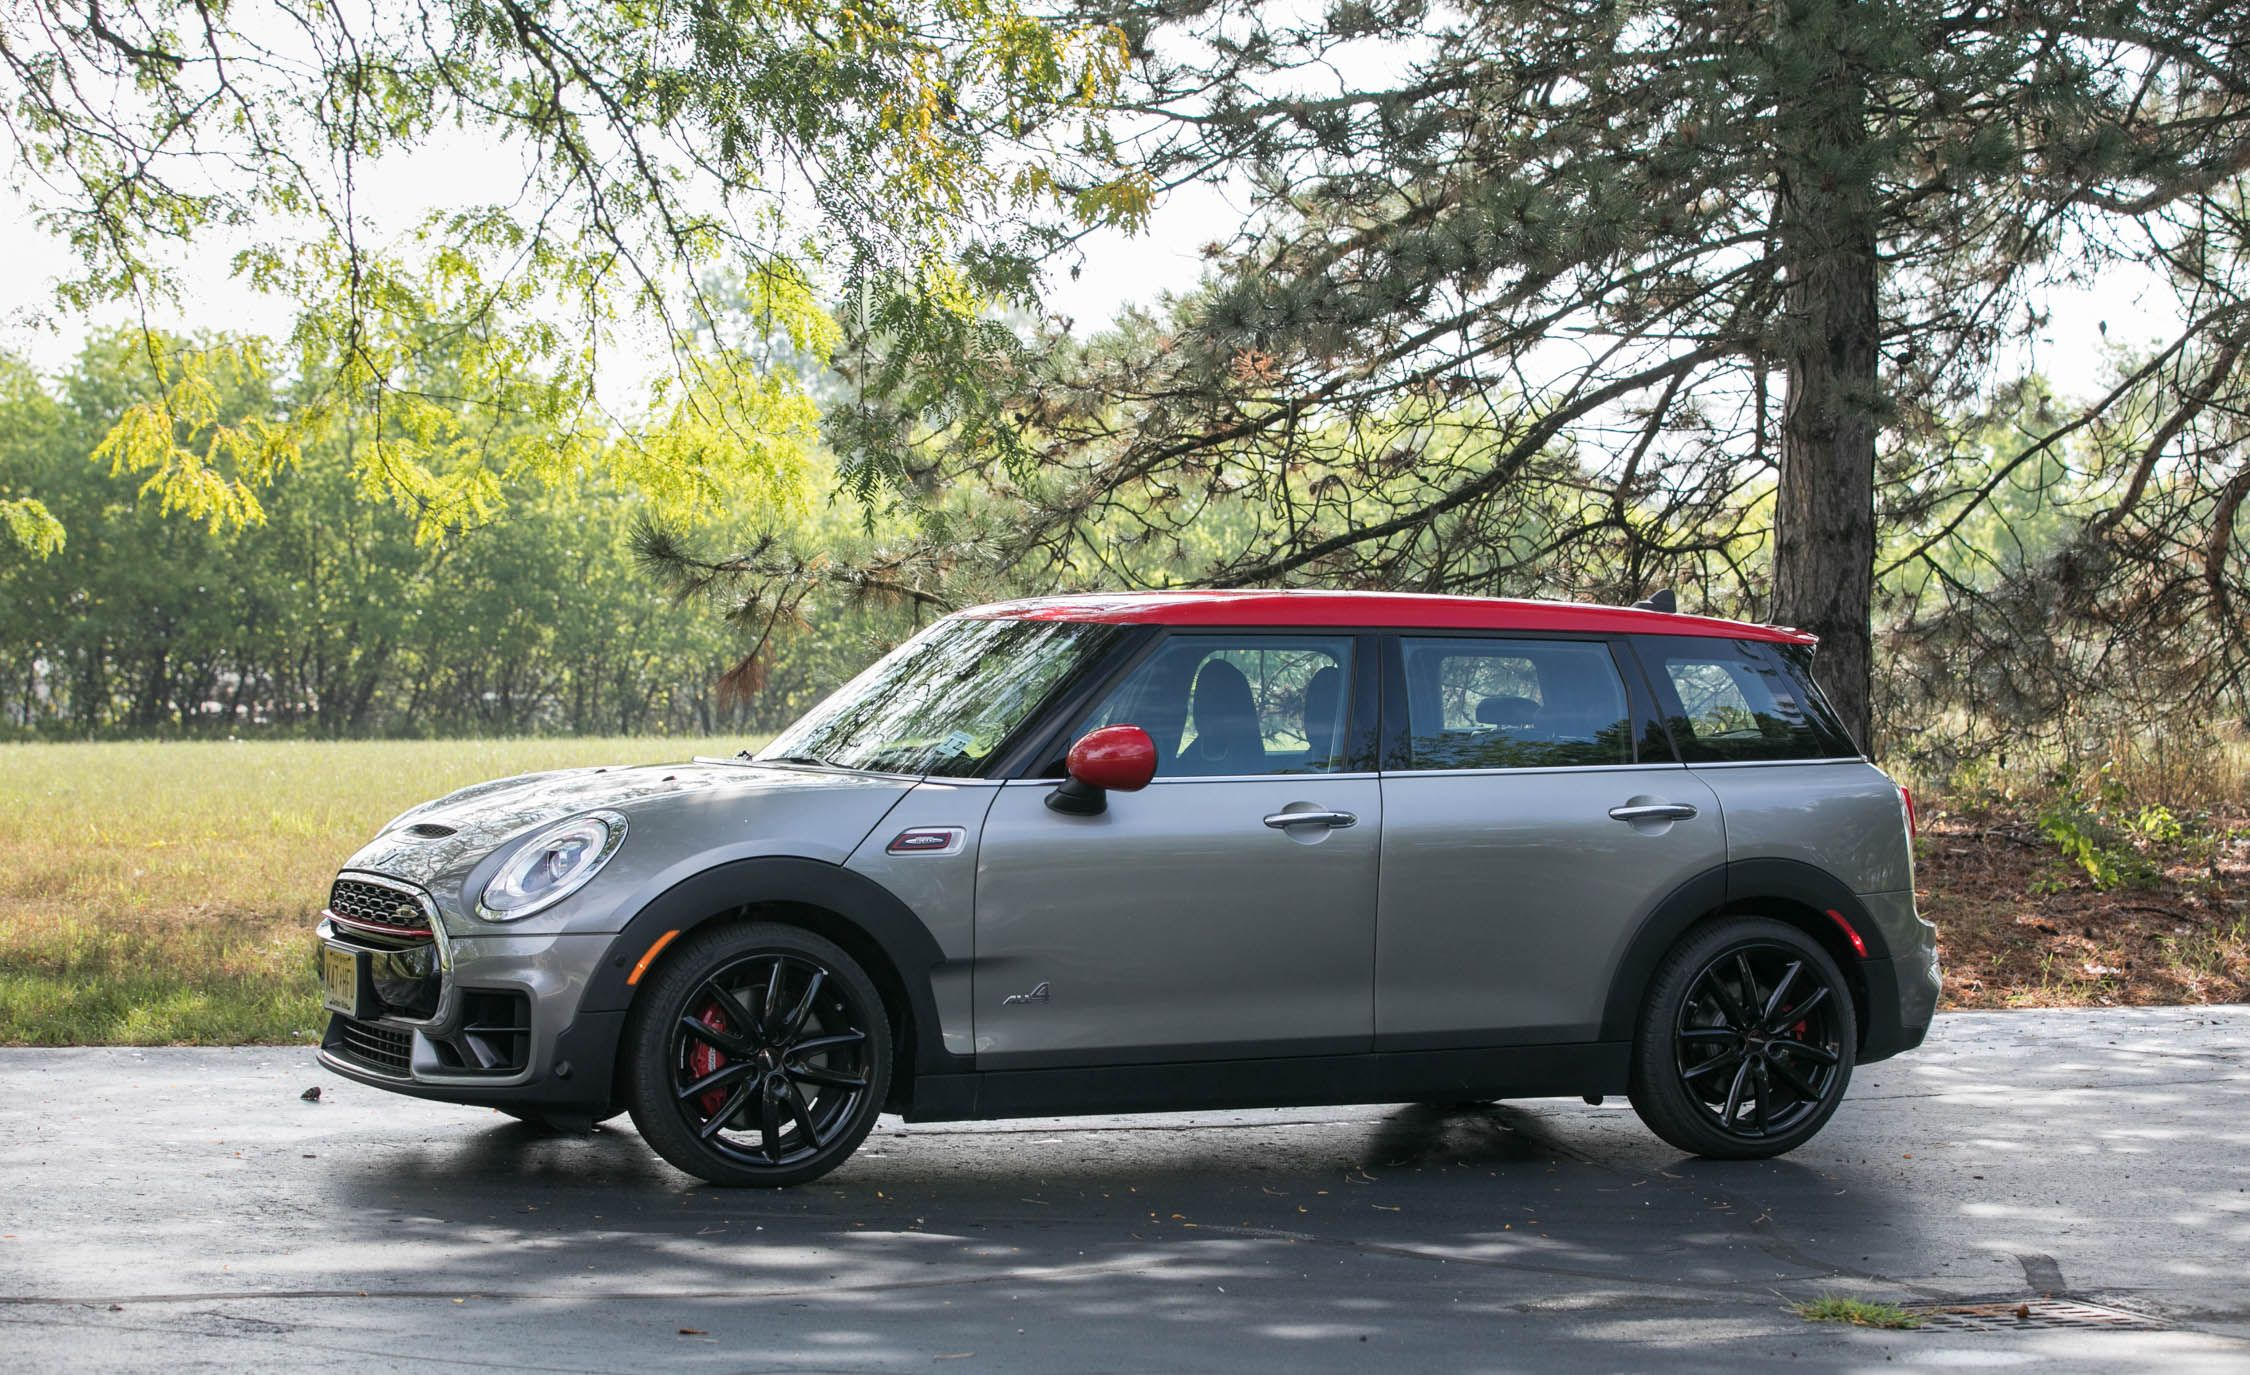 2019 Mini Cooper Clubman Jcw Reviews Price Photos And Specs Car Driver